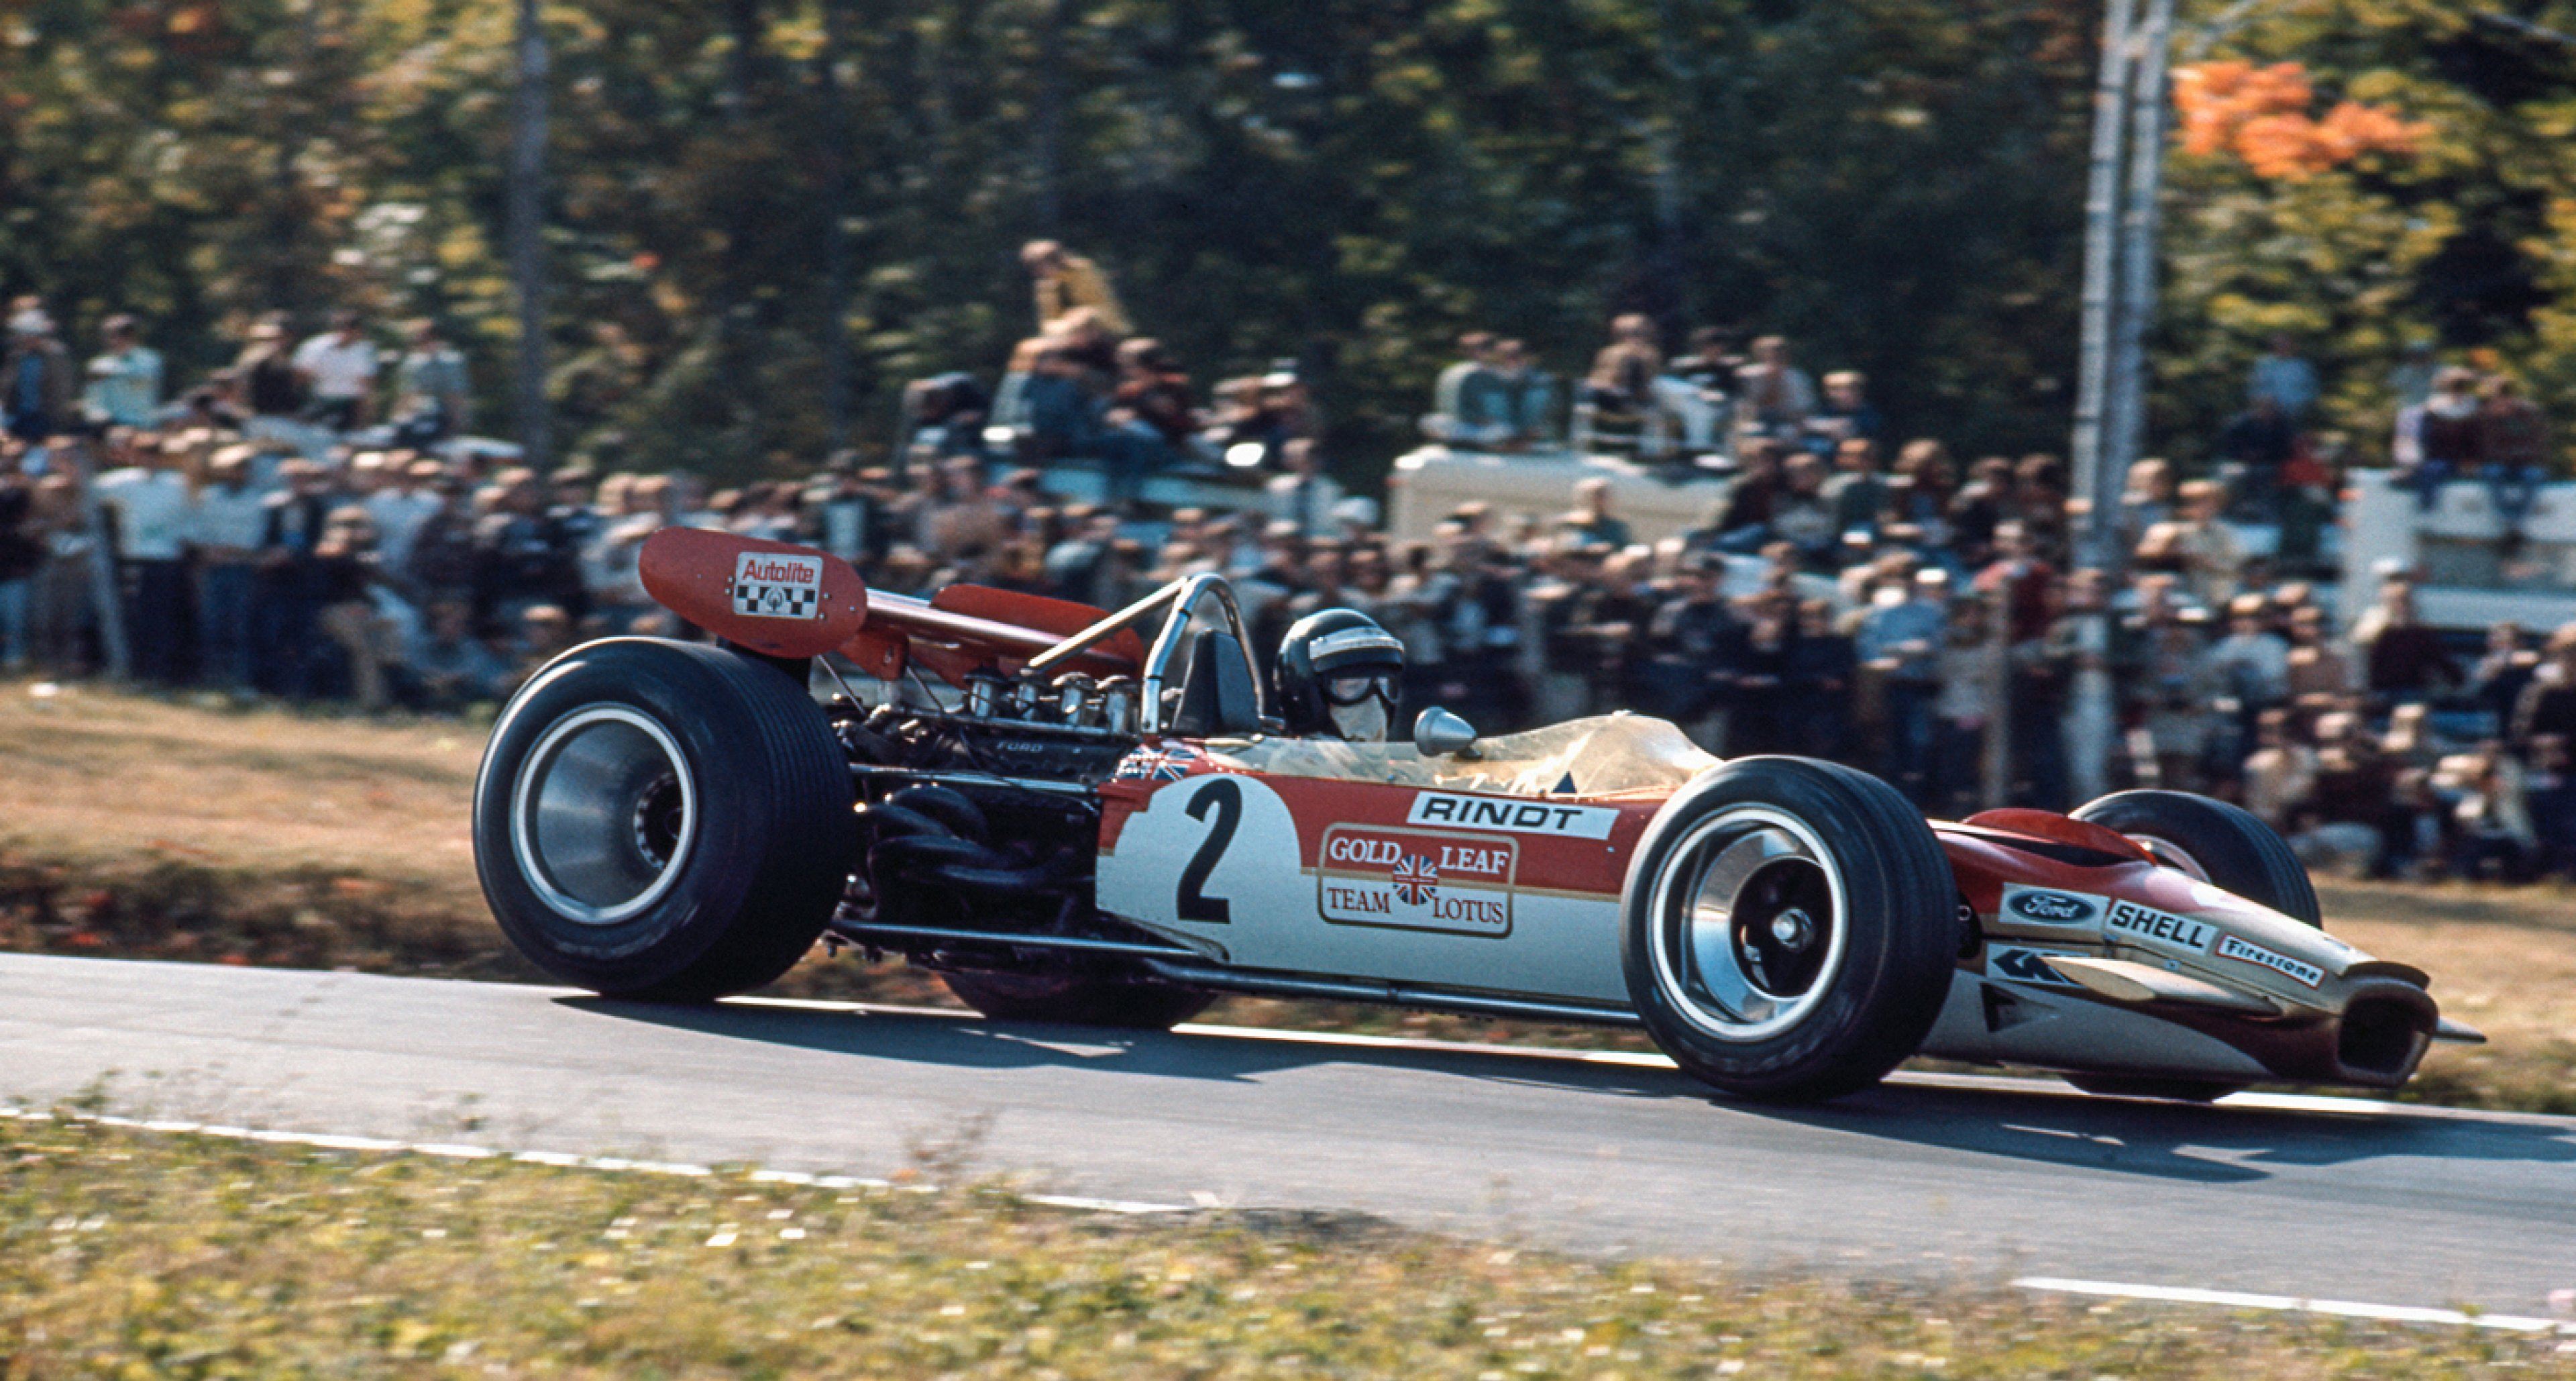 Jochen Rindt in a Lotus 49B-Cosworth on his way to victory at the United States Grand Prix at Watkins Glen in 1969.